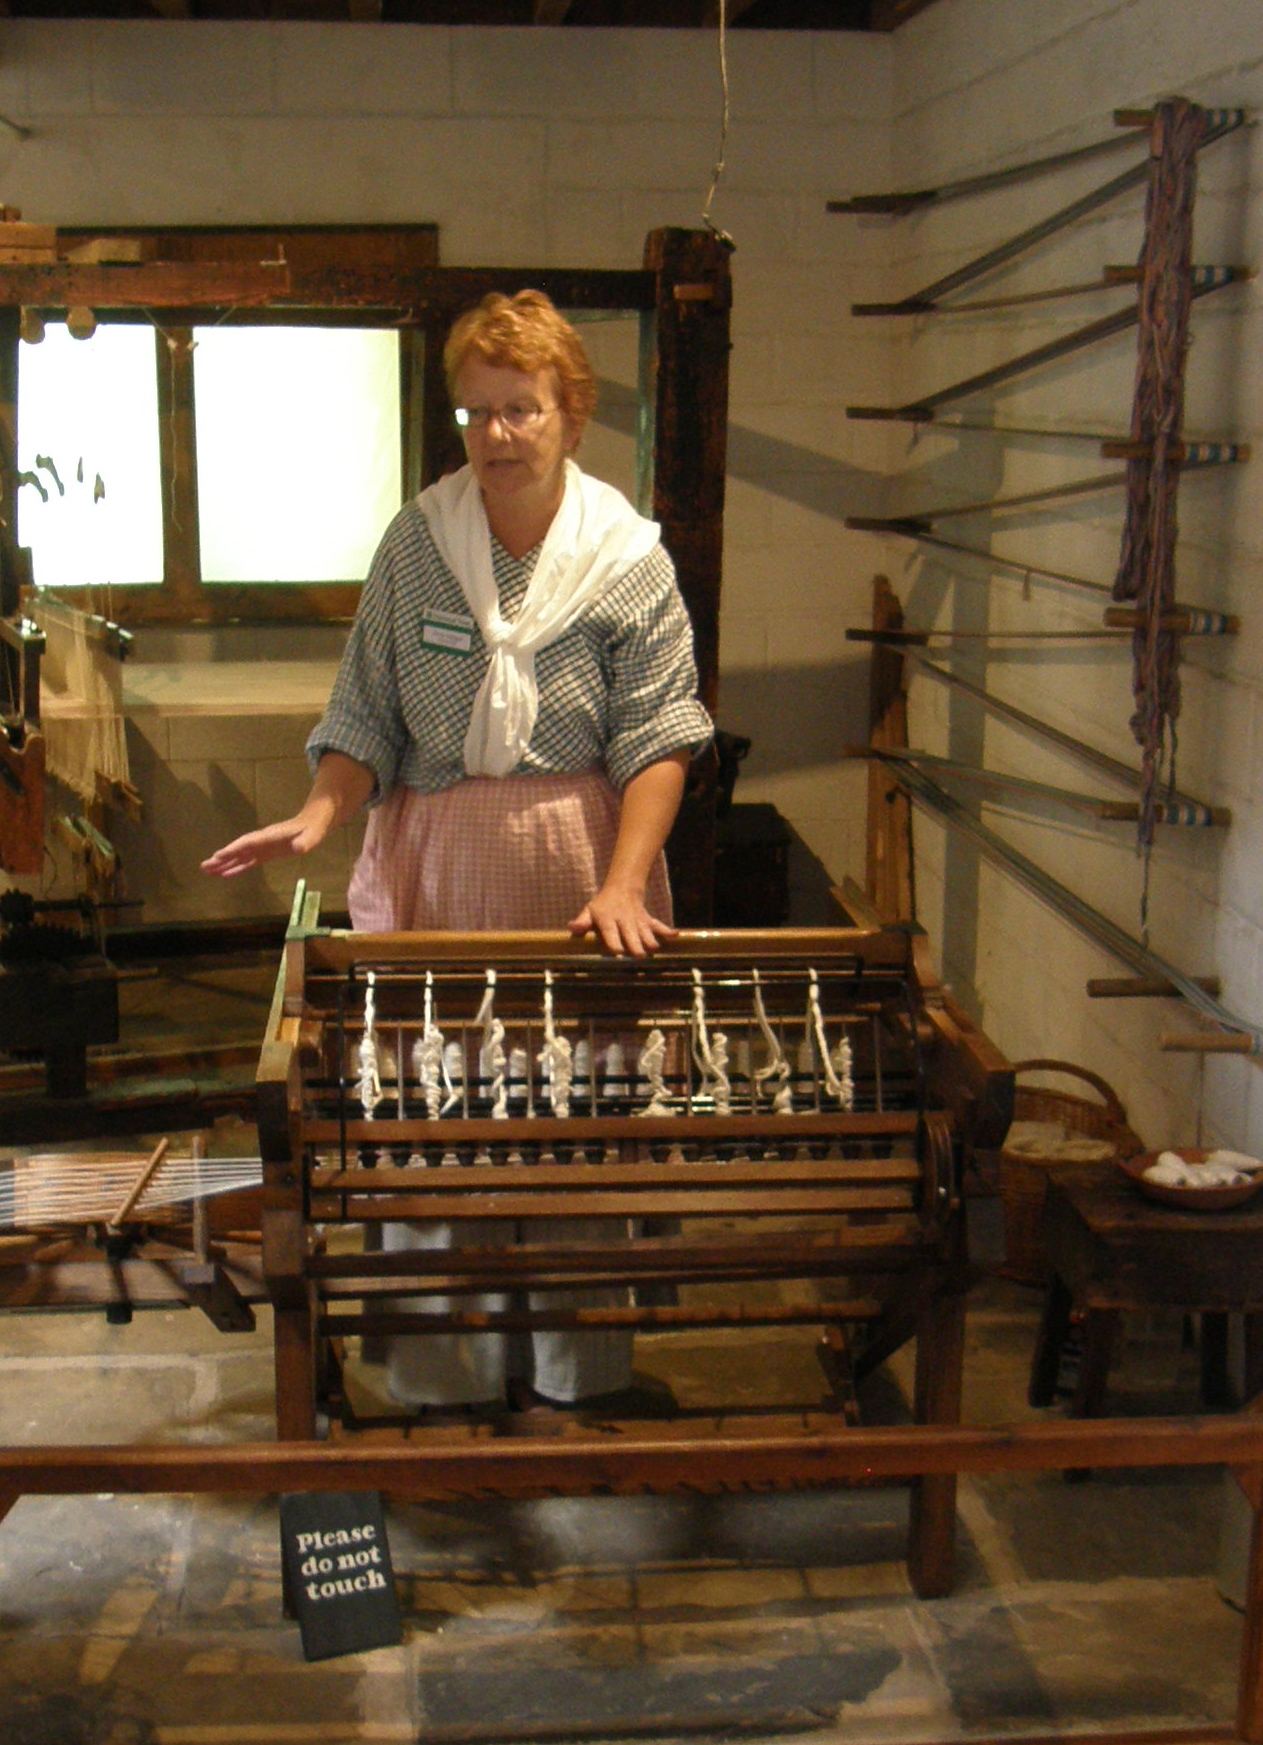 Spinning jenny exhibit, Quarry Bank Mill, Wilmslow, UK